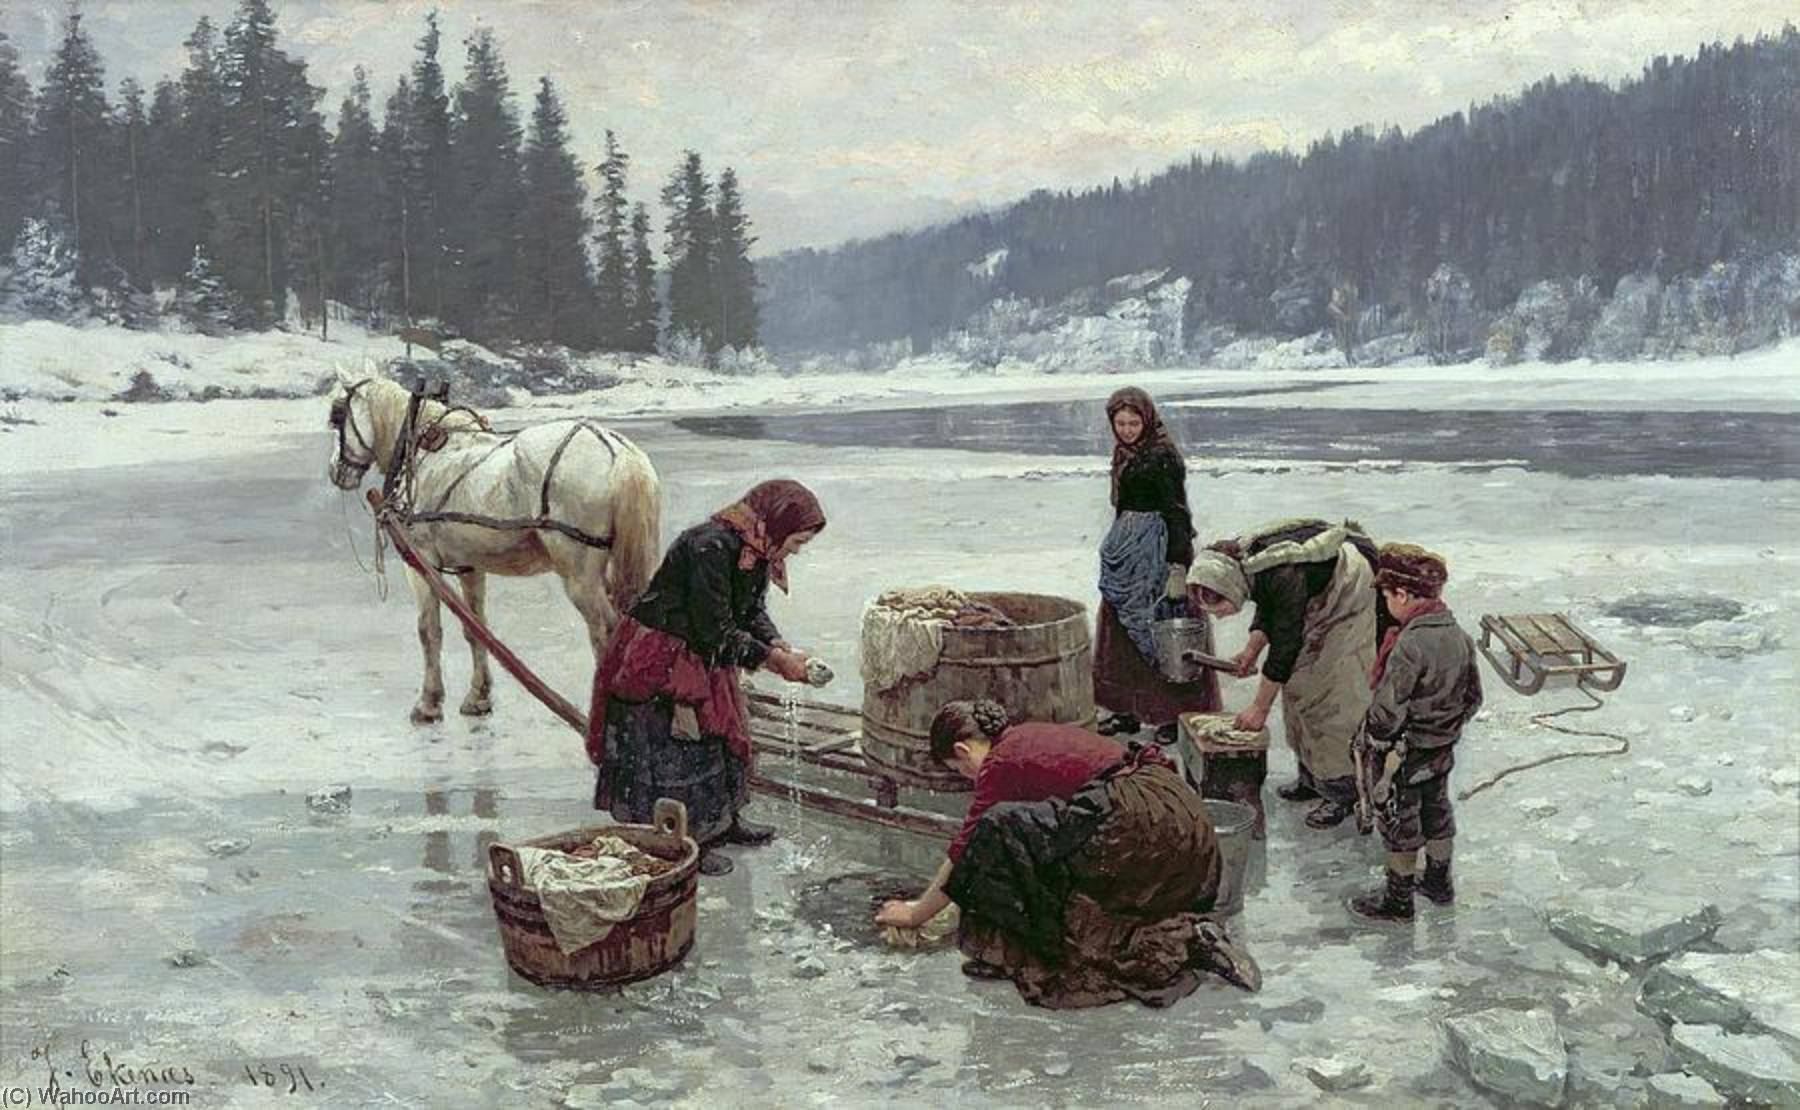 Buy Museum Art Reproductions | Women doing laundry through a hole in the ice, 1891 by Jahn Ekenæs | WahooArt.com